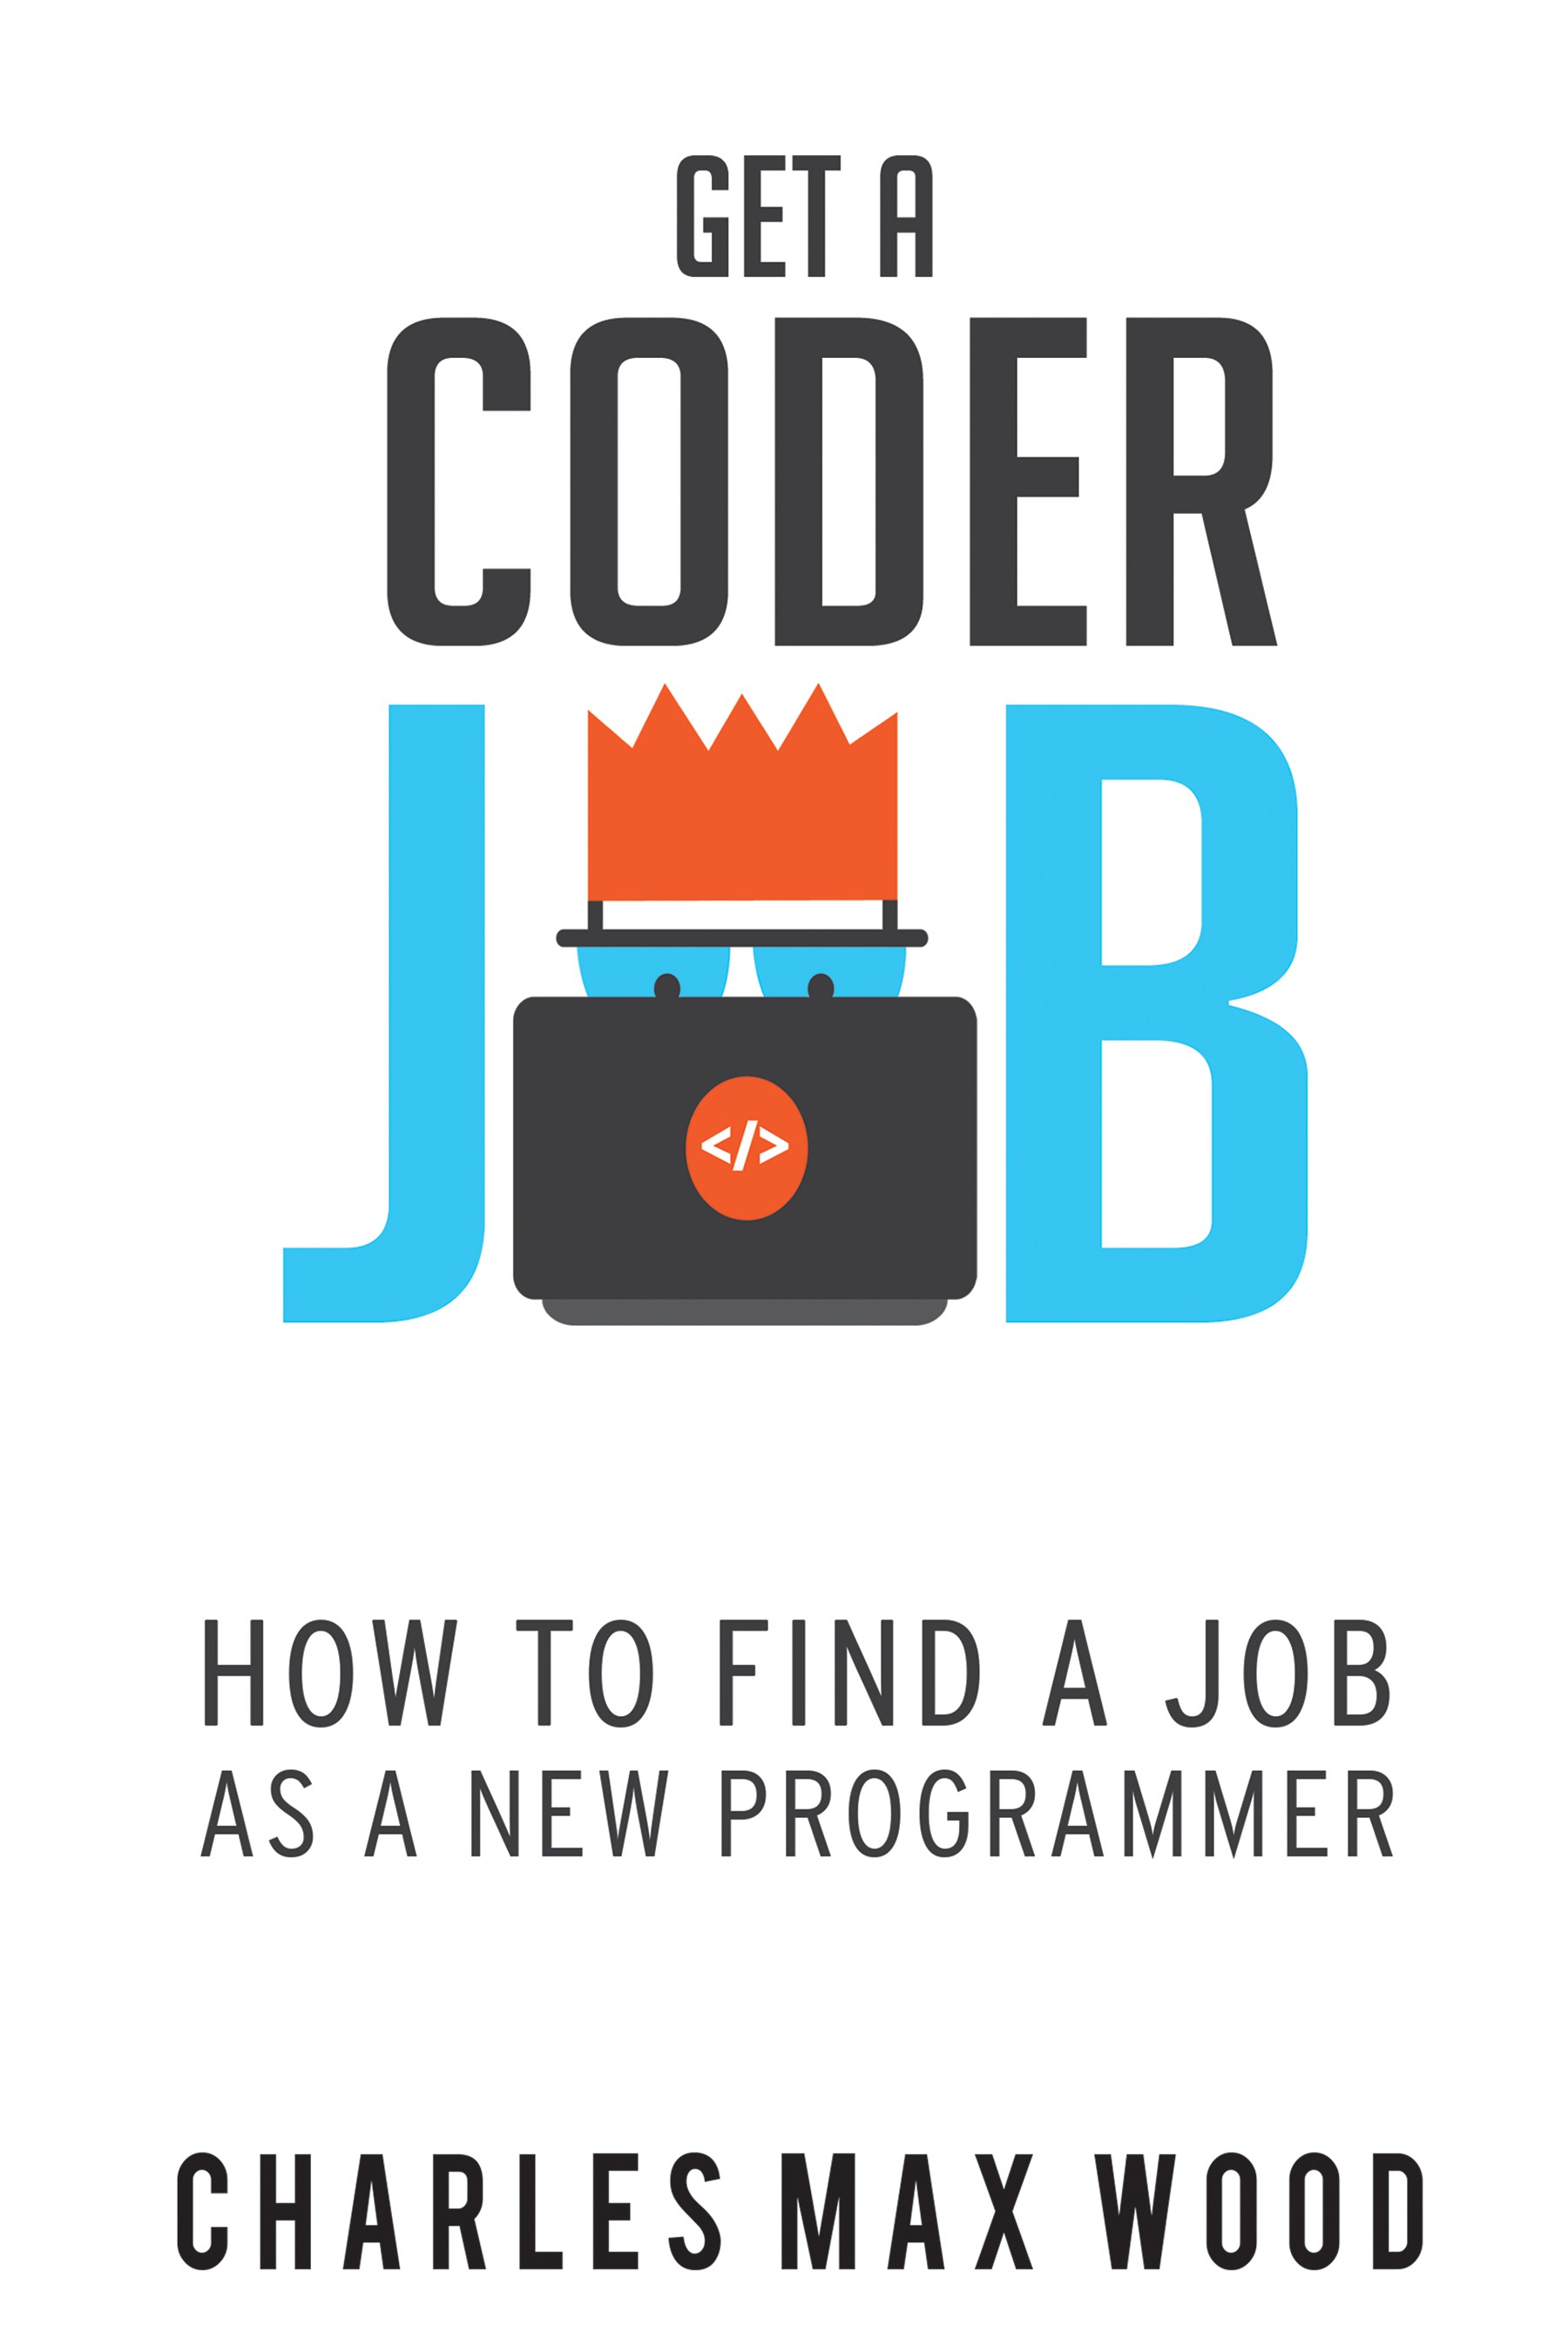 Create an engaging book cover for a book helping new programmers get a job